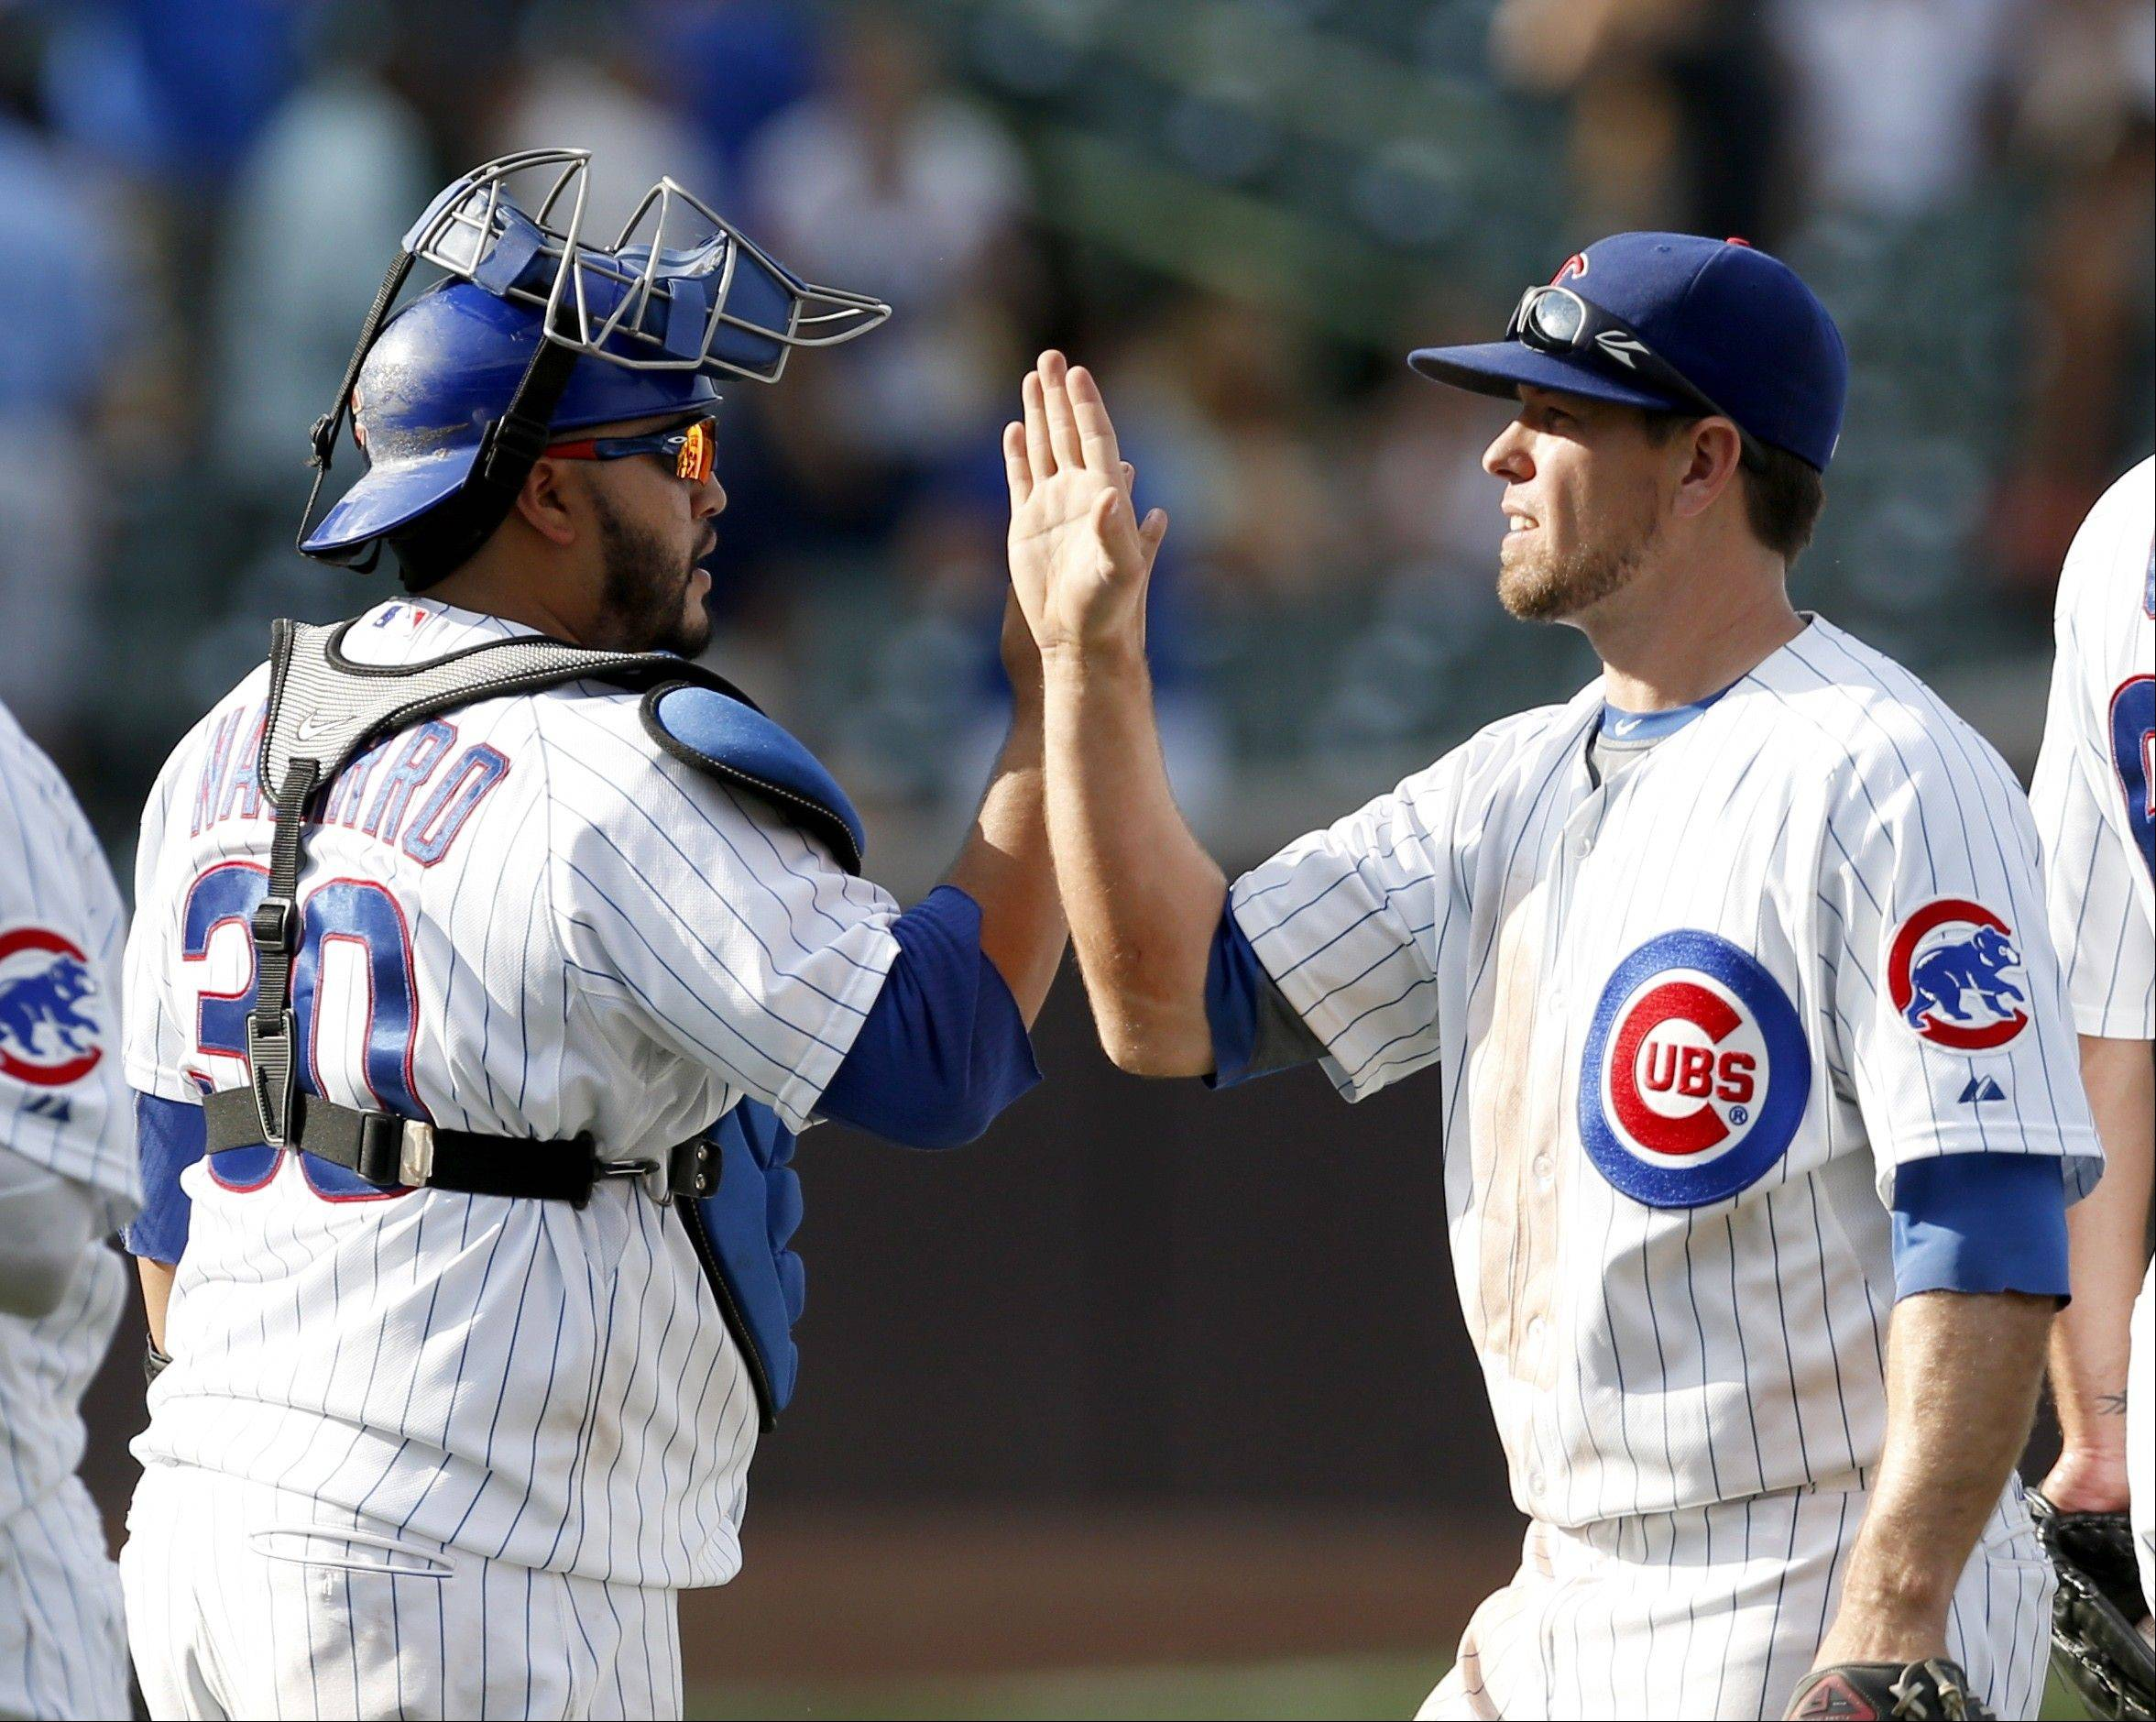 Catcher Dioner Navarro and third baseman Donnie Murphy are two players who have more than caught the attention of the Cubs this season.